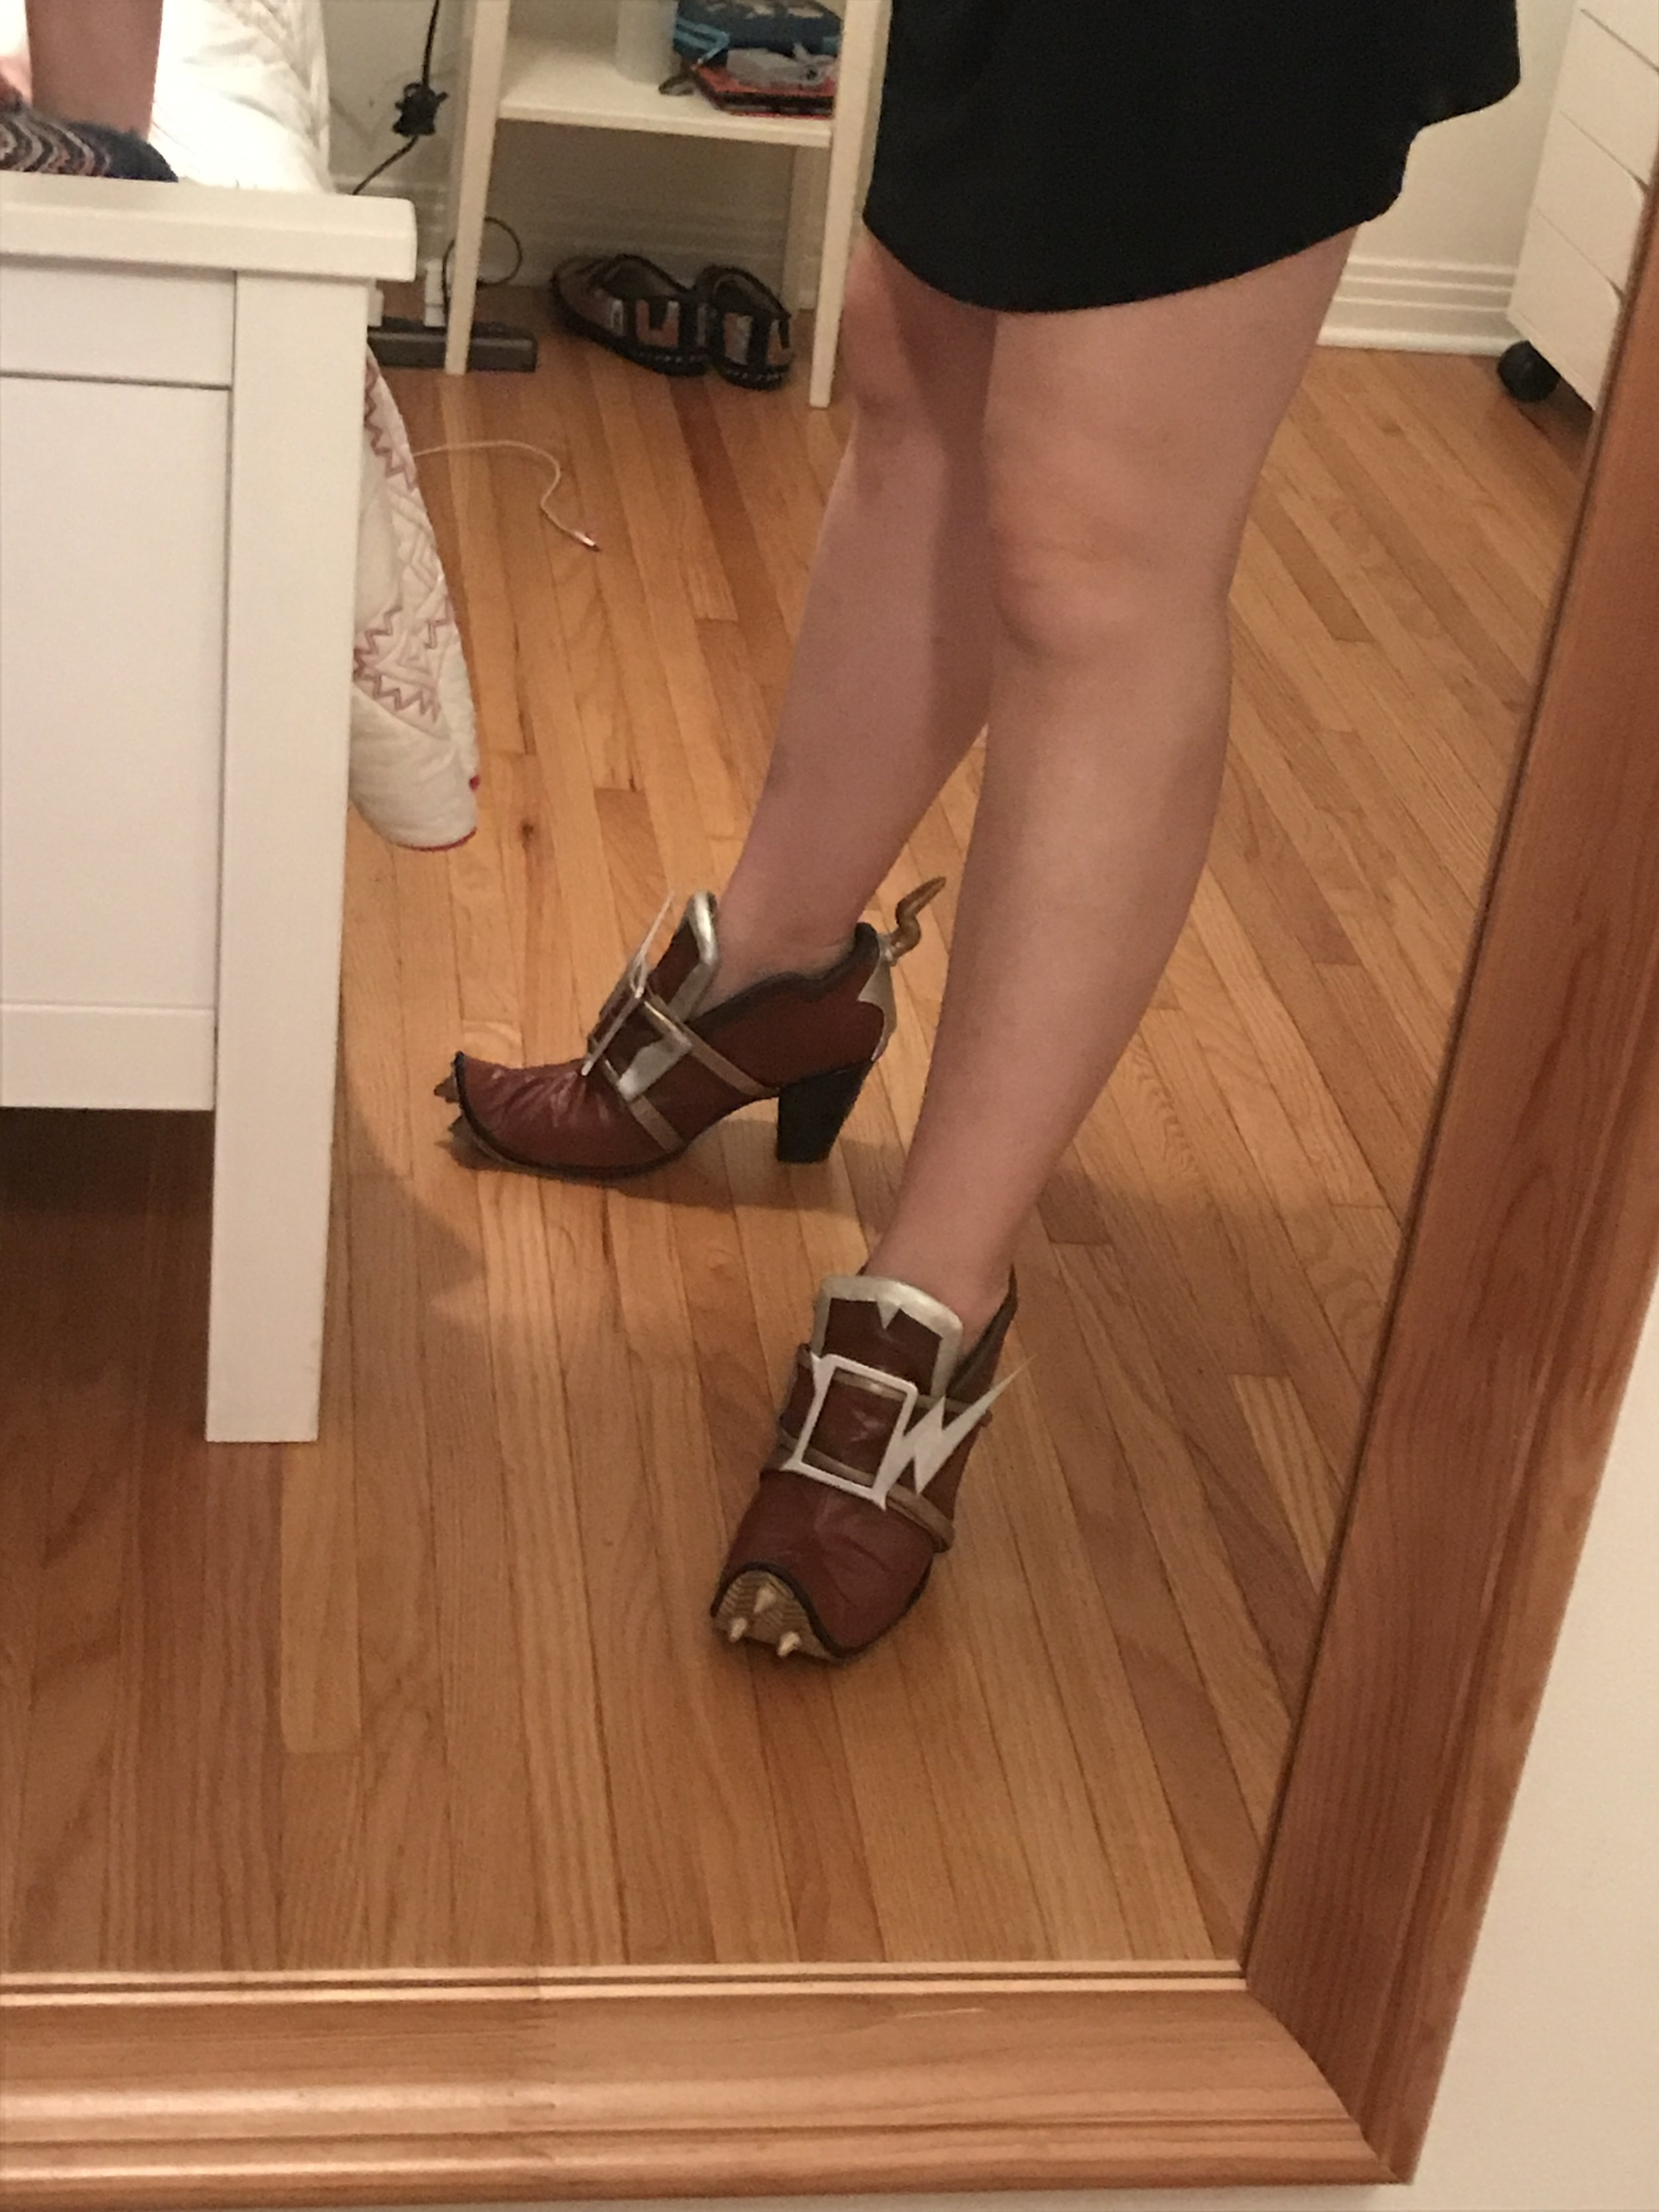 I bought boots and cut them up for this, before covering them with foam and fabric (the spikes and back part are black worbla). My feet are a little big for my height, so I didn't want to just add extra length to the front of the shoe, instead cutting off the toe and making a new toe with heat-shaped foam.